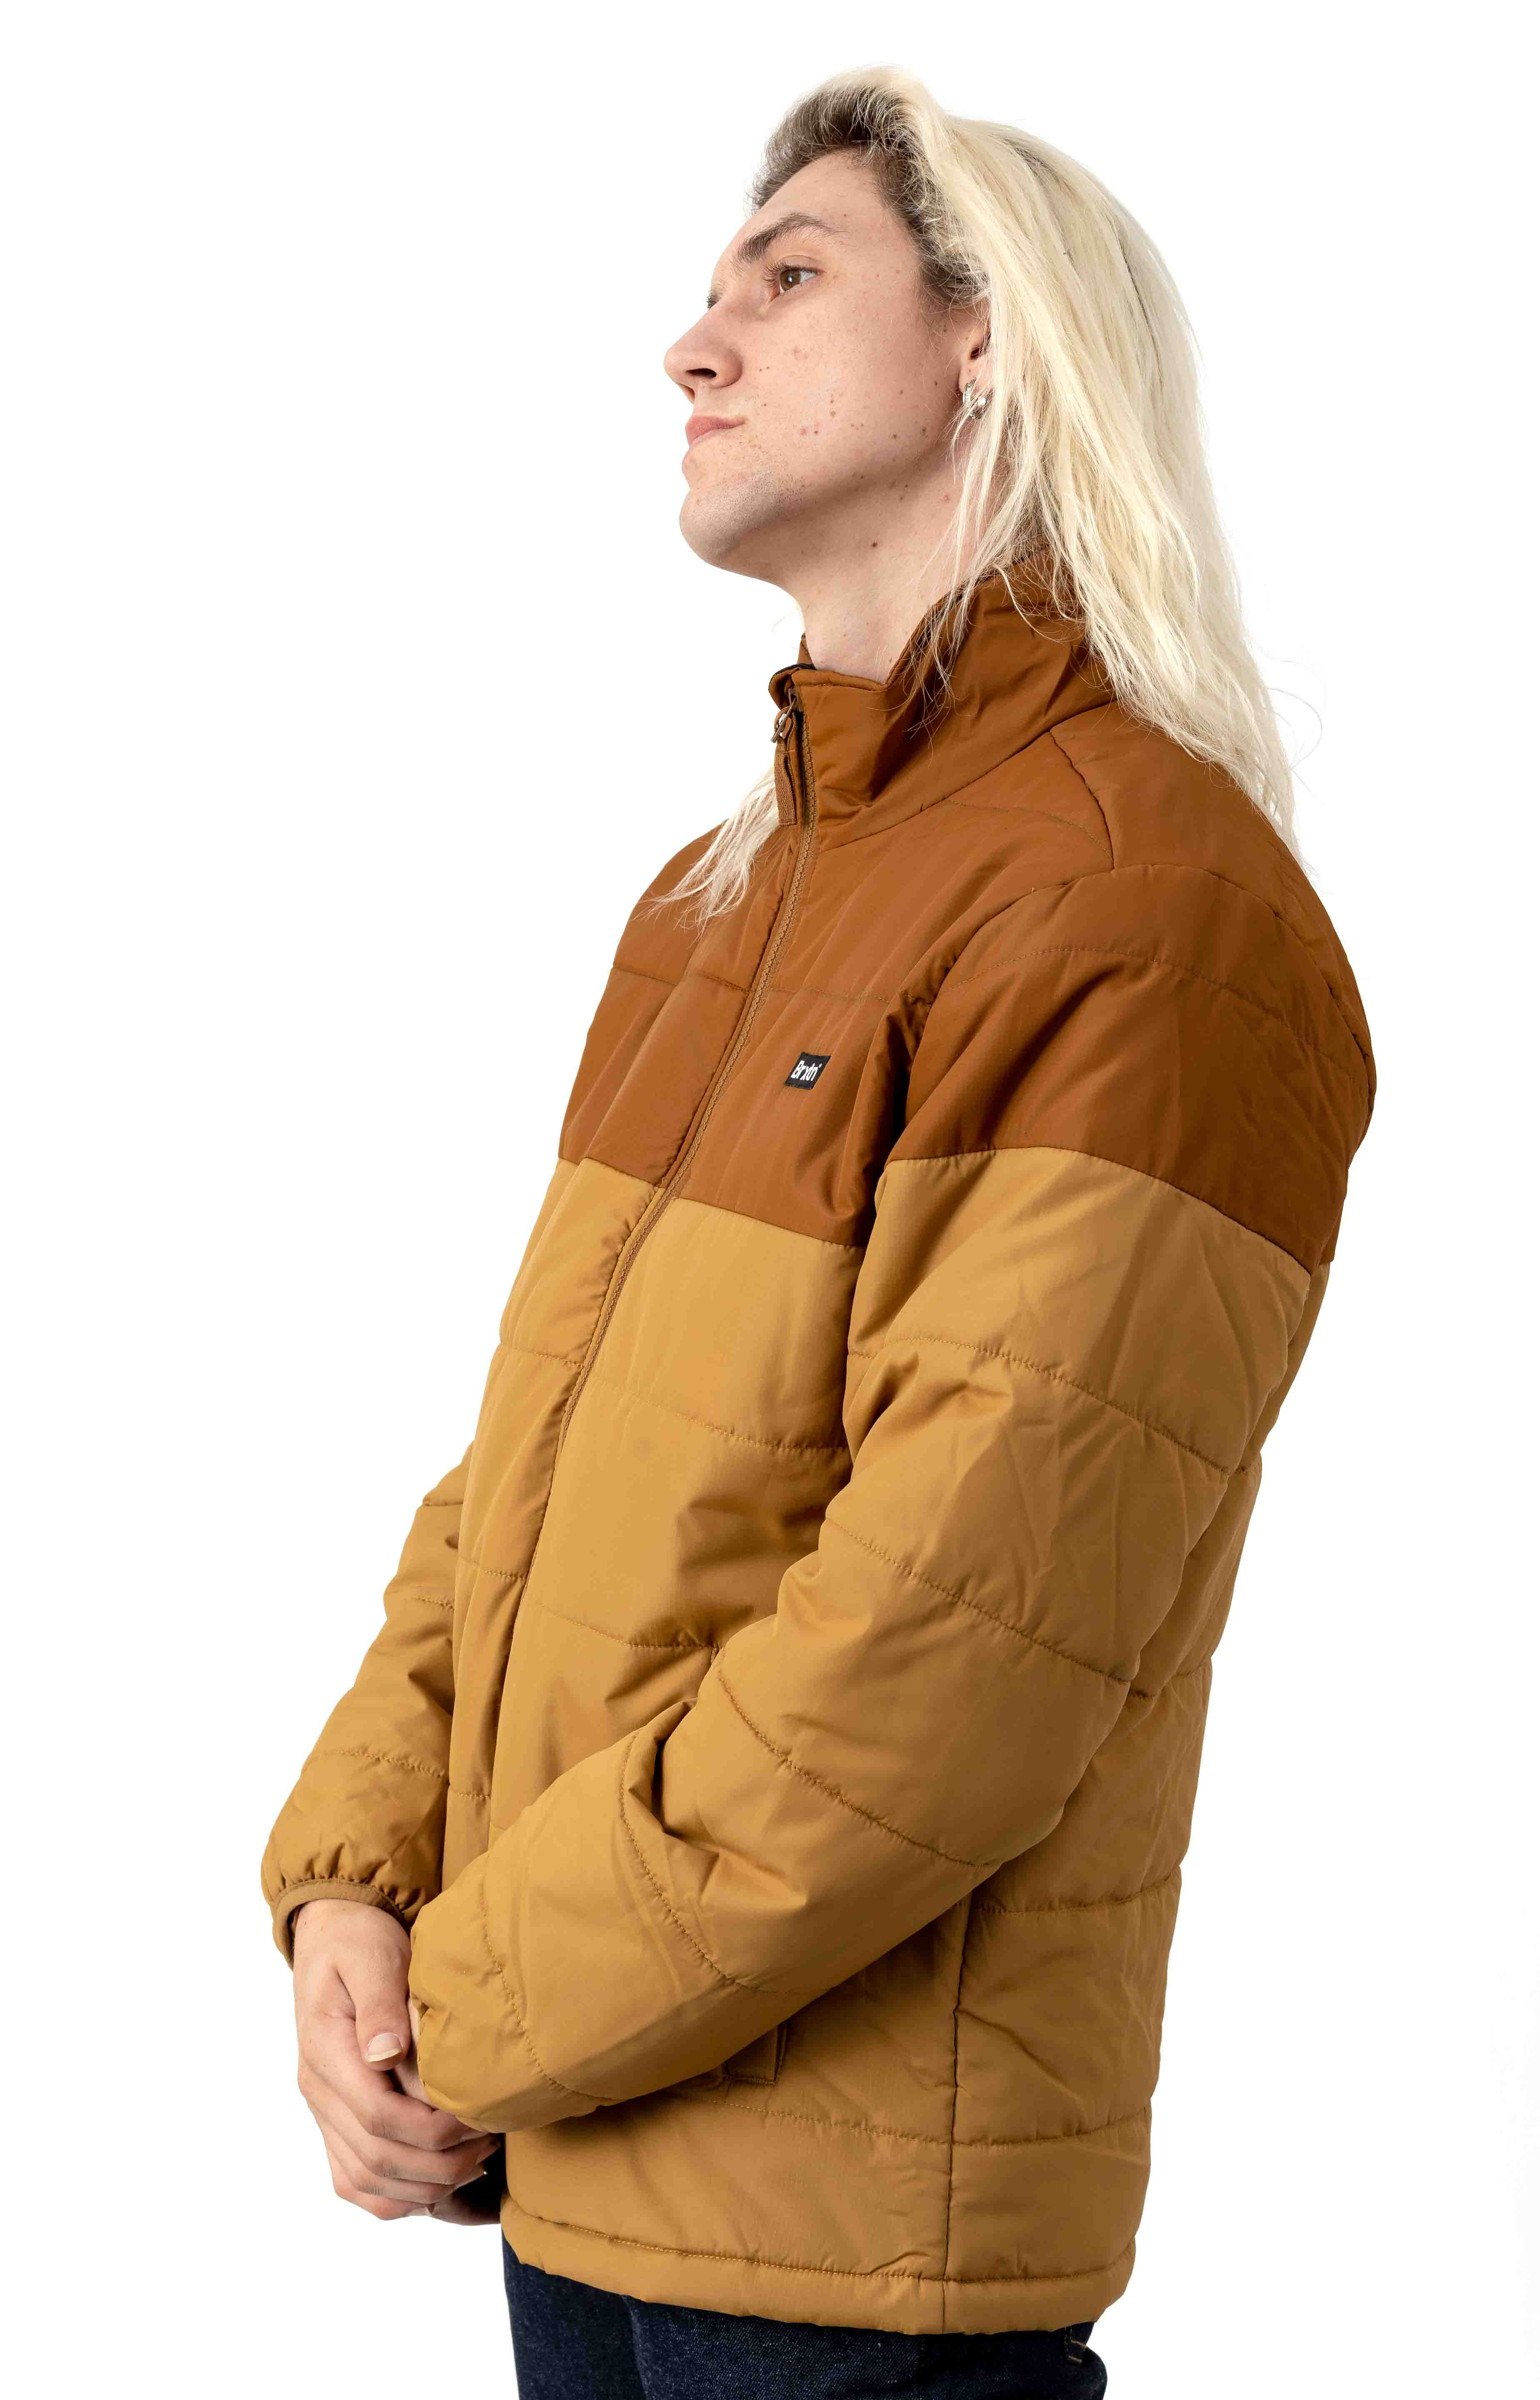 Cass Puffer Jacket - Cooper/Washed Cooper 2